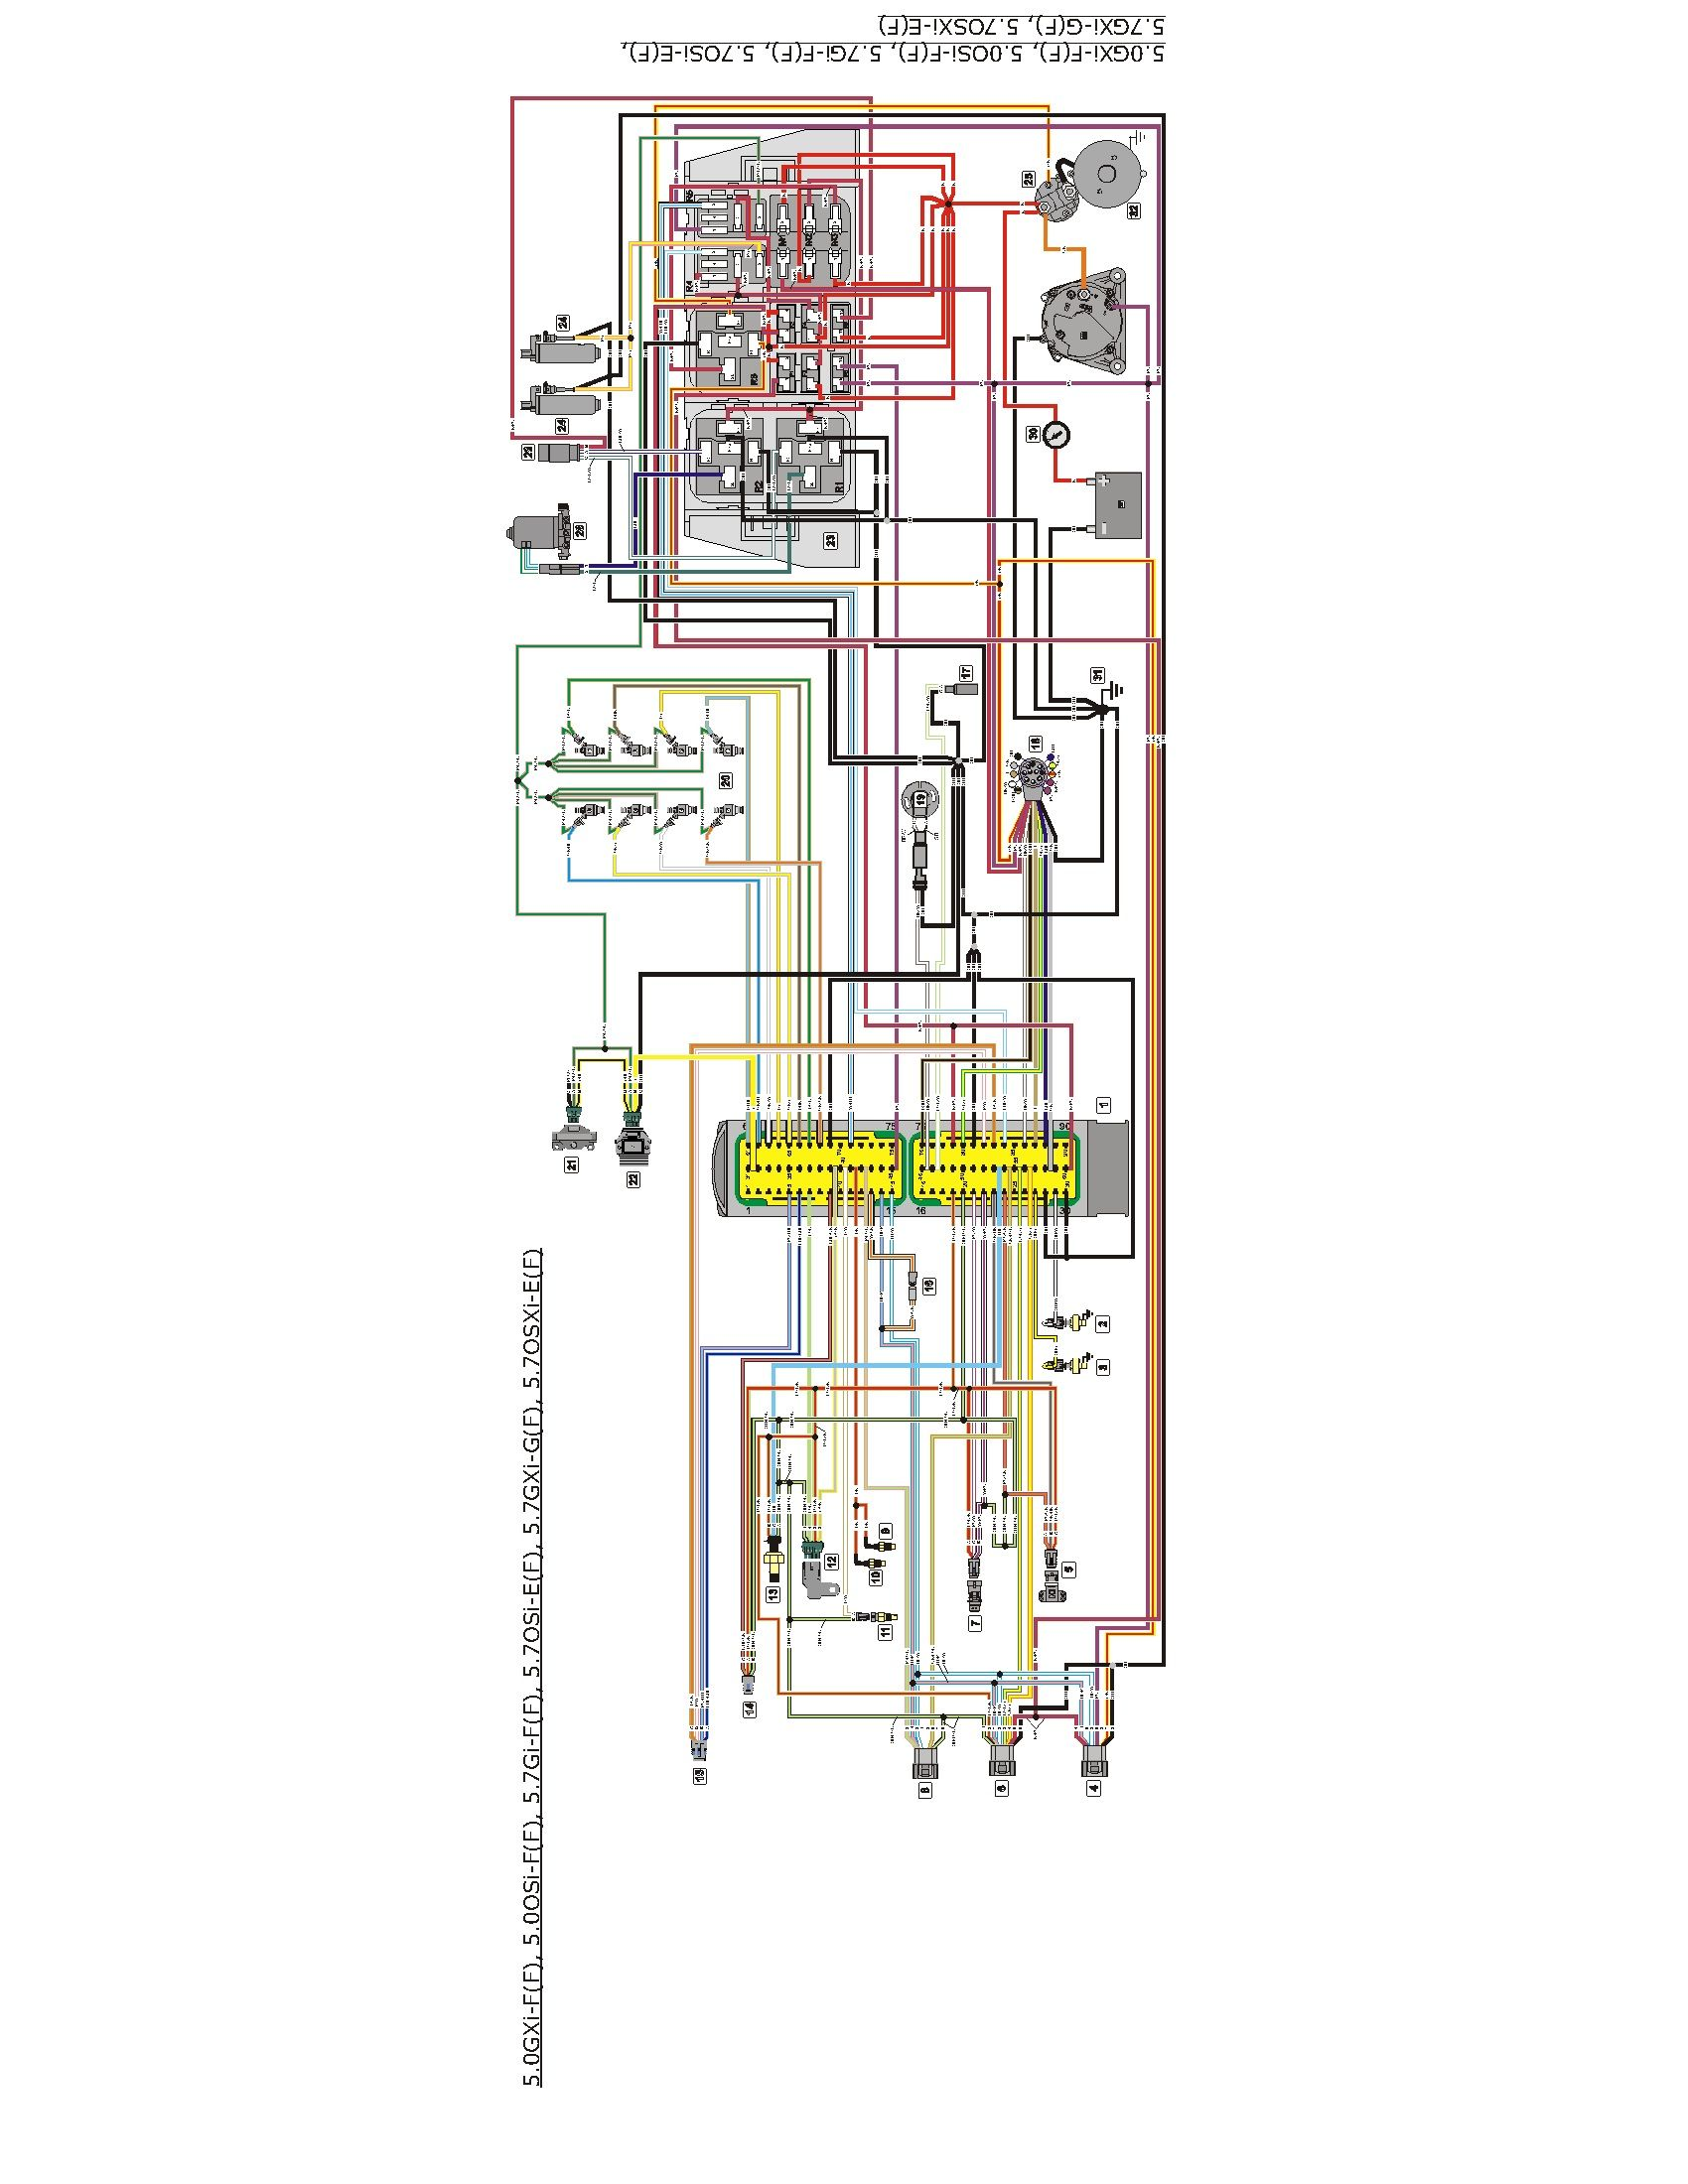 Wondrous Volvo S60 Wiring Diagram Basic Electronics Wiring Diagram Wiring Digital Resources Bemuashebarightsorg